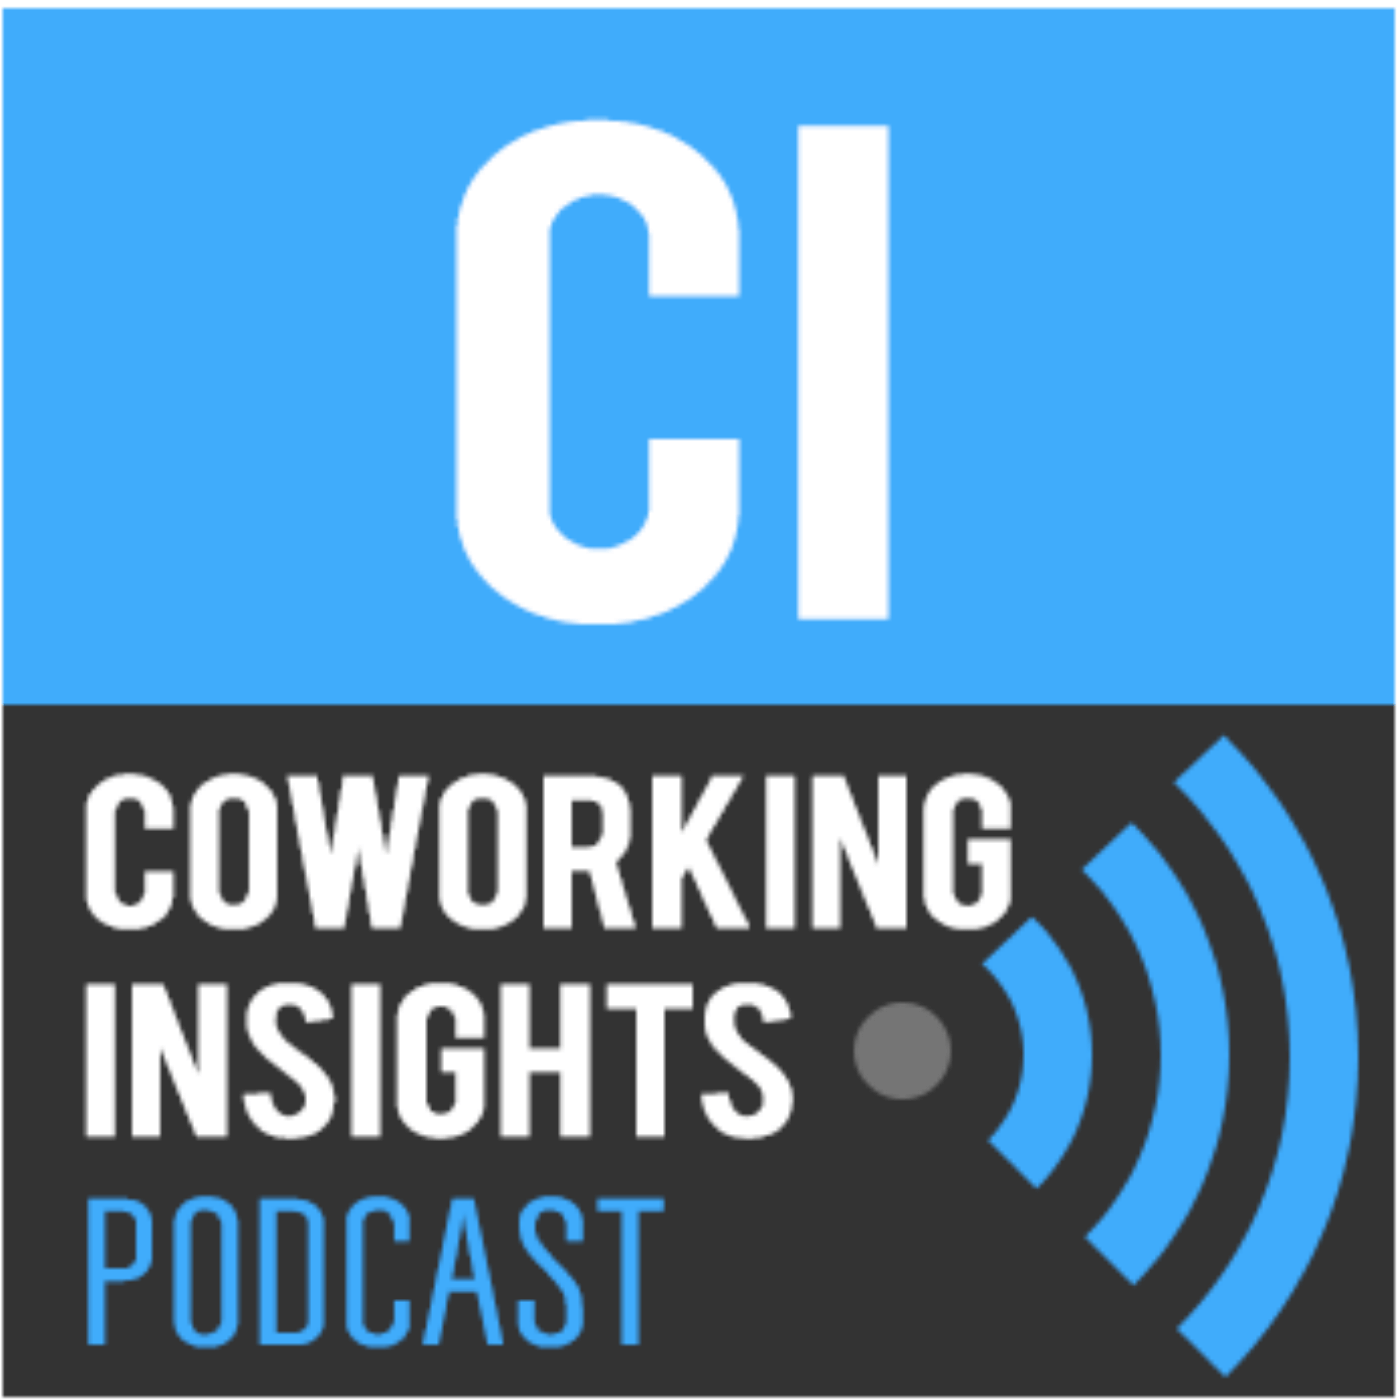 Ep 7 - The Trend Driving the Expansion of New Coworking Spaces